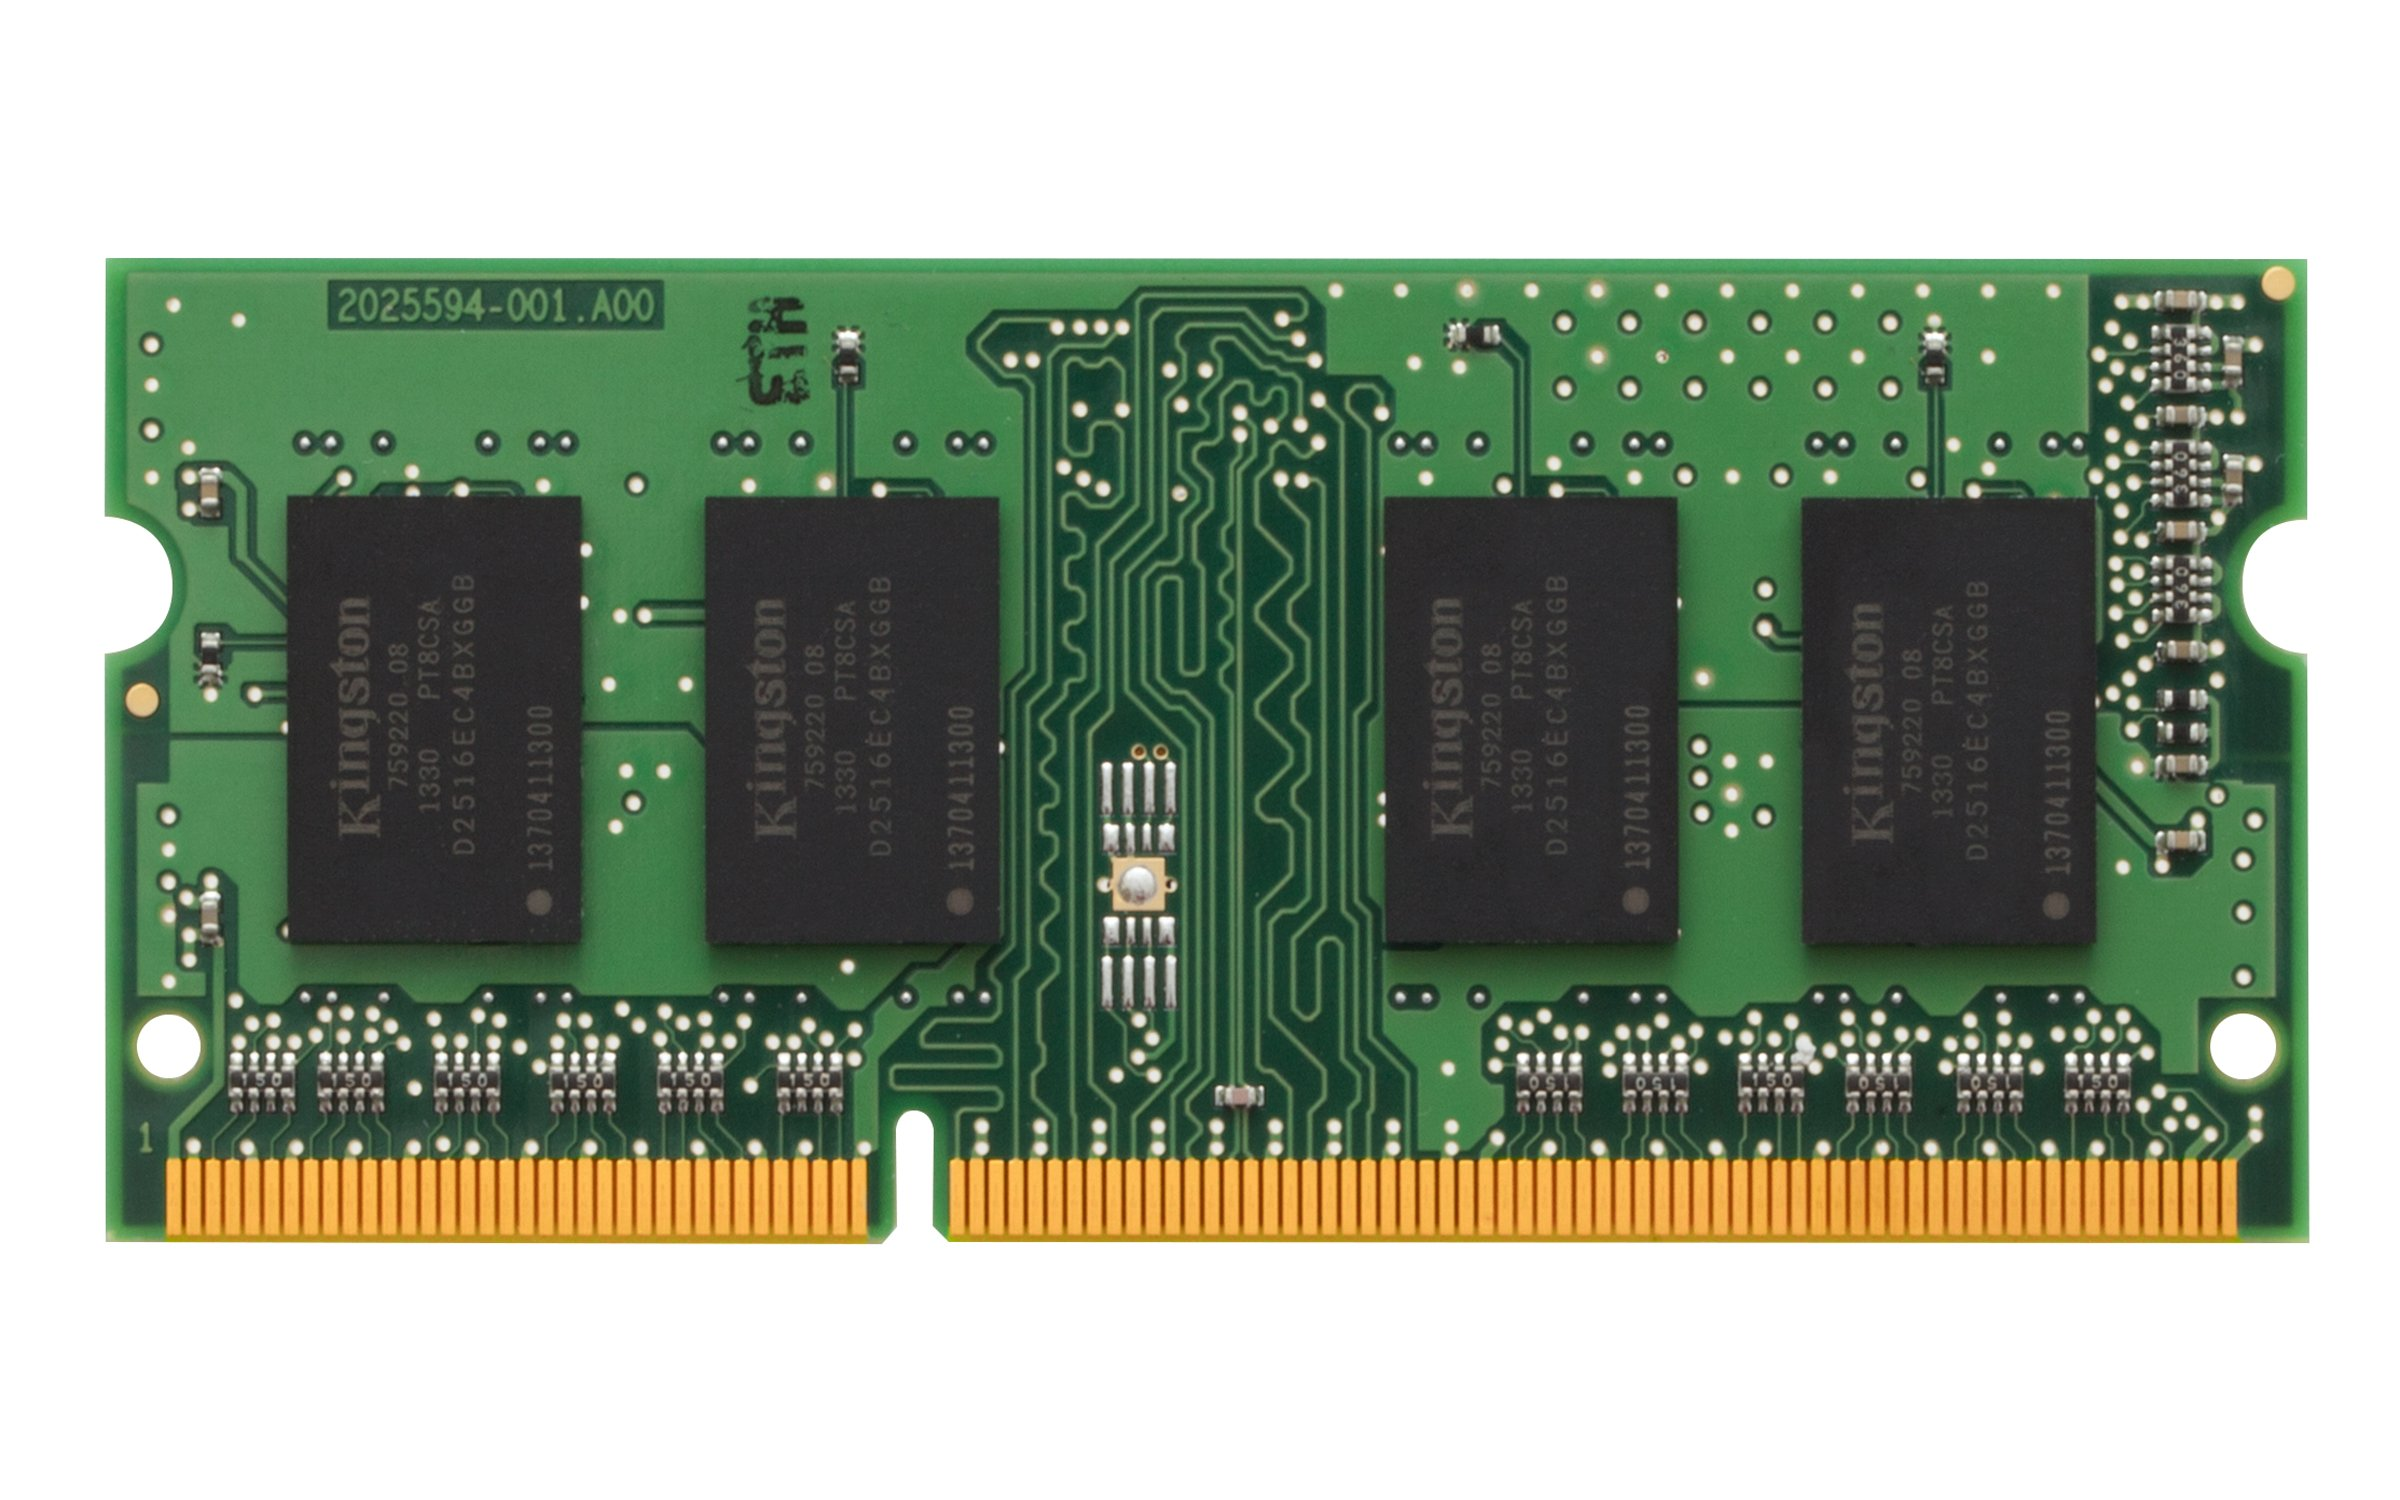 Kingston 8gb Module - Ddr3 1600mhz - 8 Gb [1 X 8 Gb] - Ddr3 Sdram - 1600 Mhz Ddr3-1600/pc3-12800 - Non-ecc - Unbuffered - 204-pin - Sodimm (kcp316sd8-8)